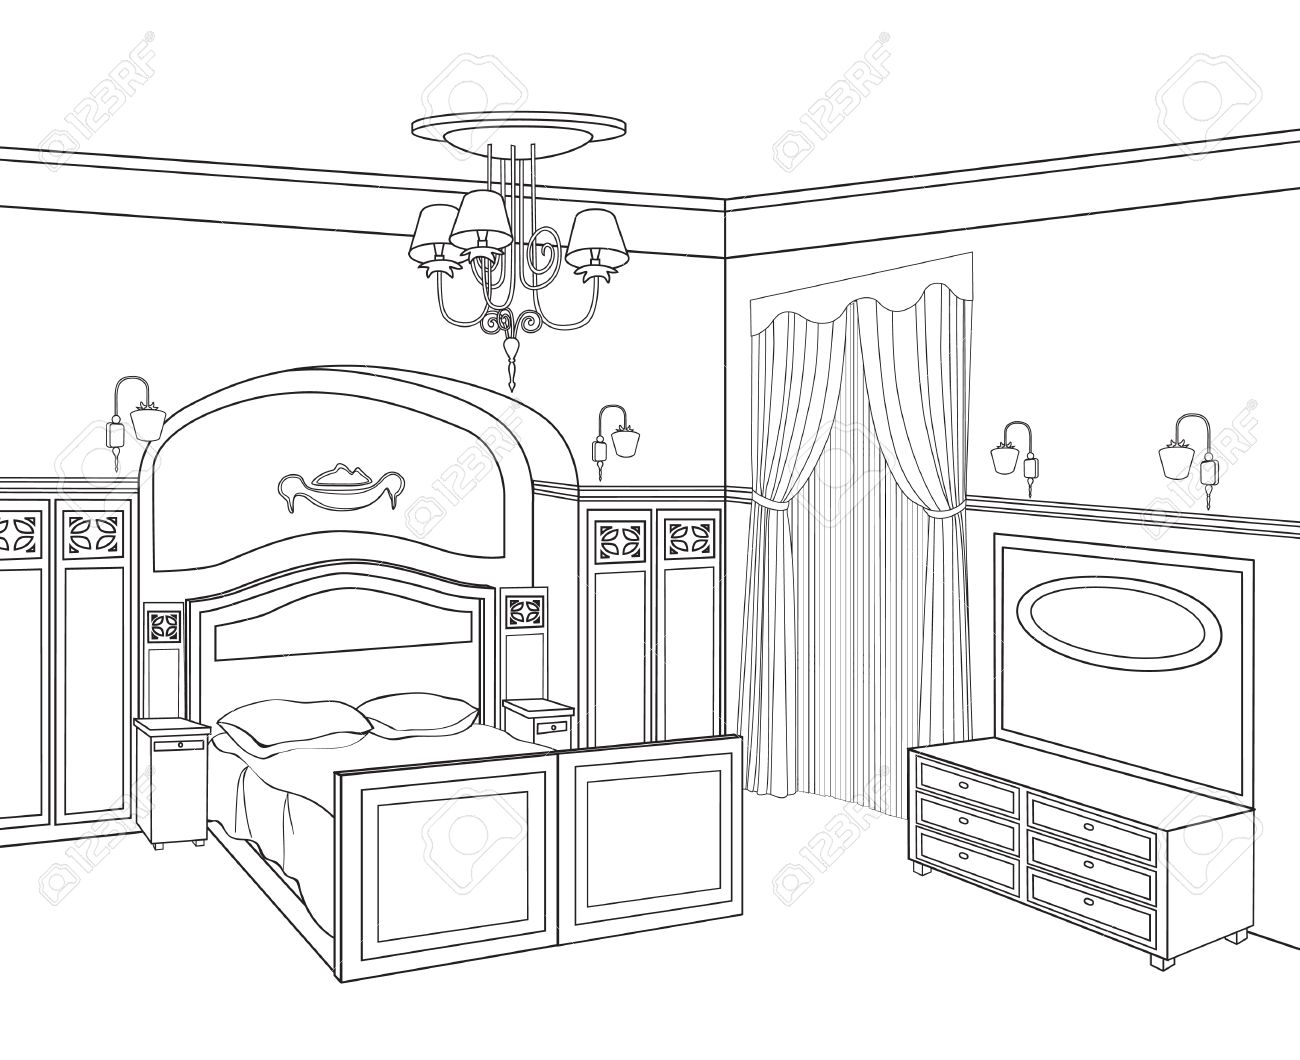 . Bedroom furniture  Retro style room  Editable outline sketch